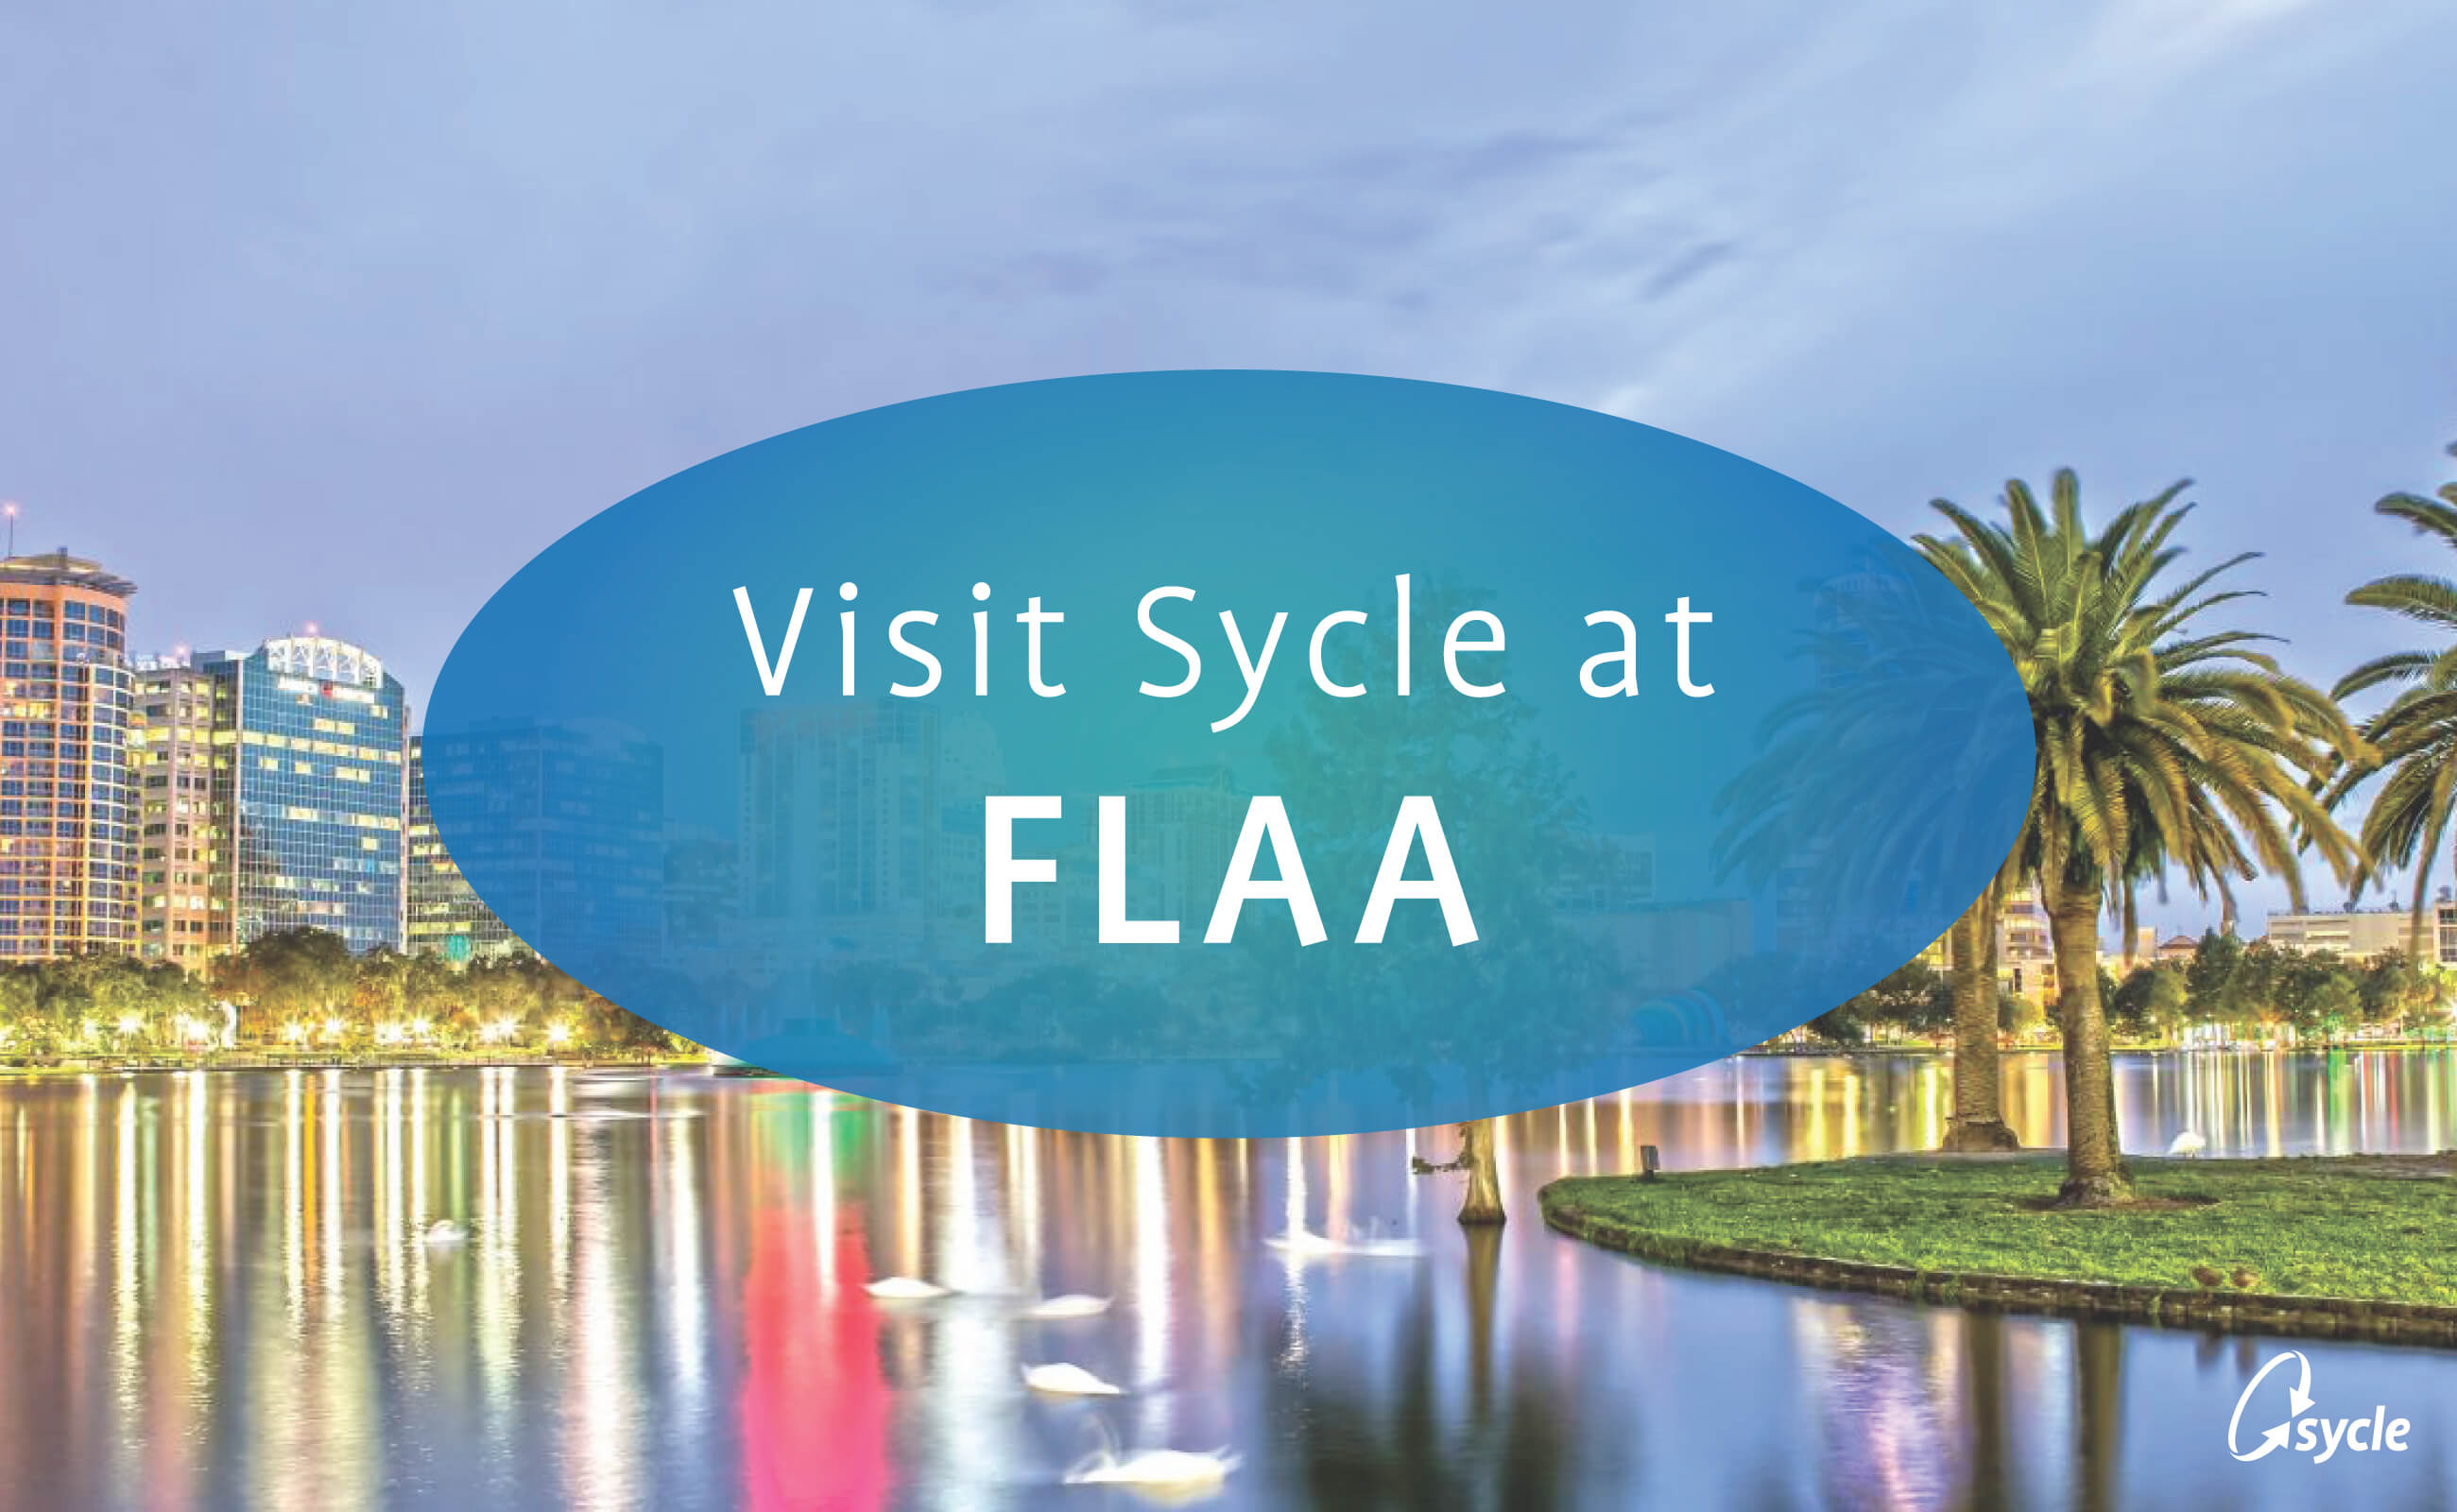 Join Sycle at FLAA August 2-3, 2018 image